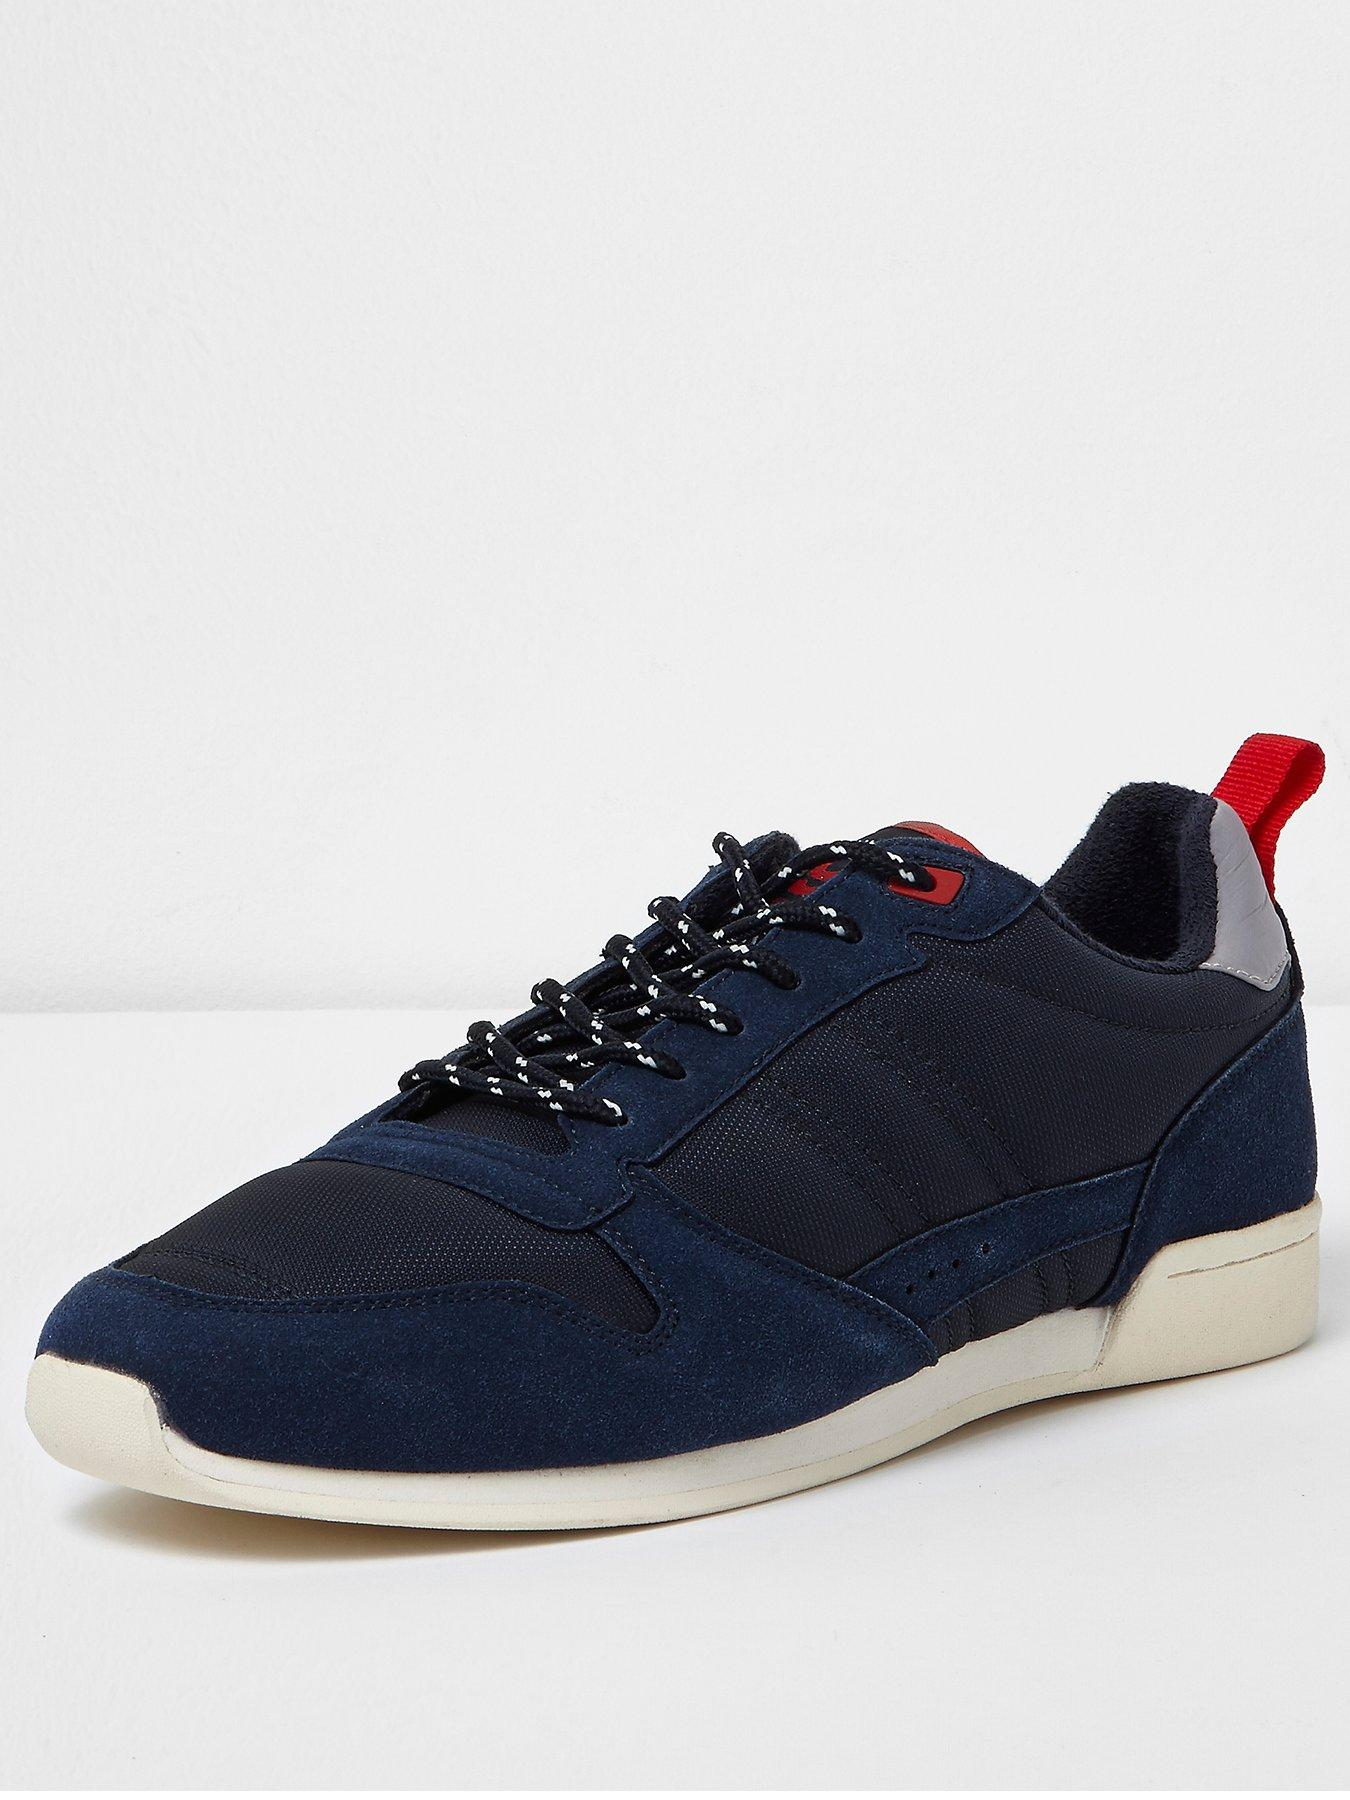 River Island Retro Runner Trainer 1600192848 Men's Shoes River Island Shoes